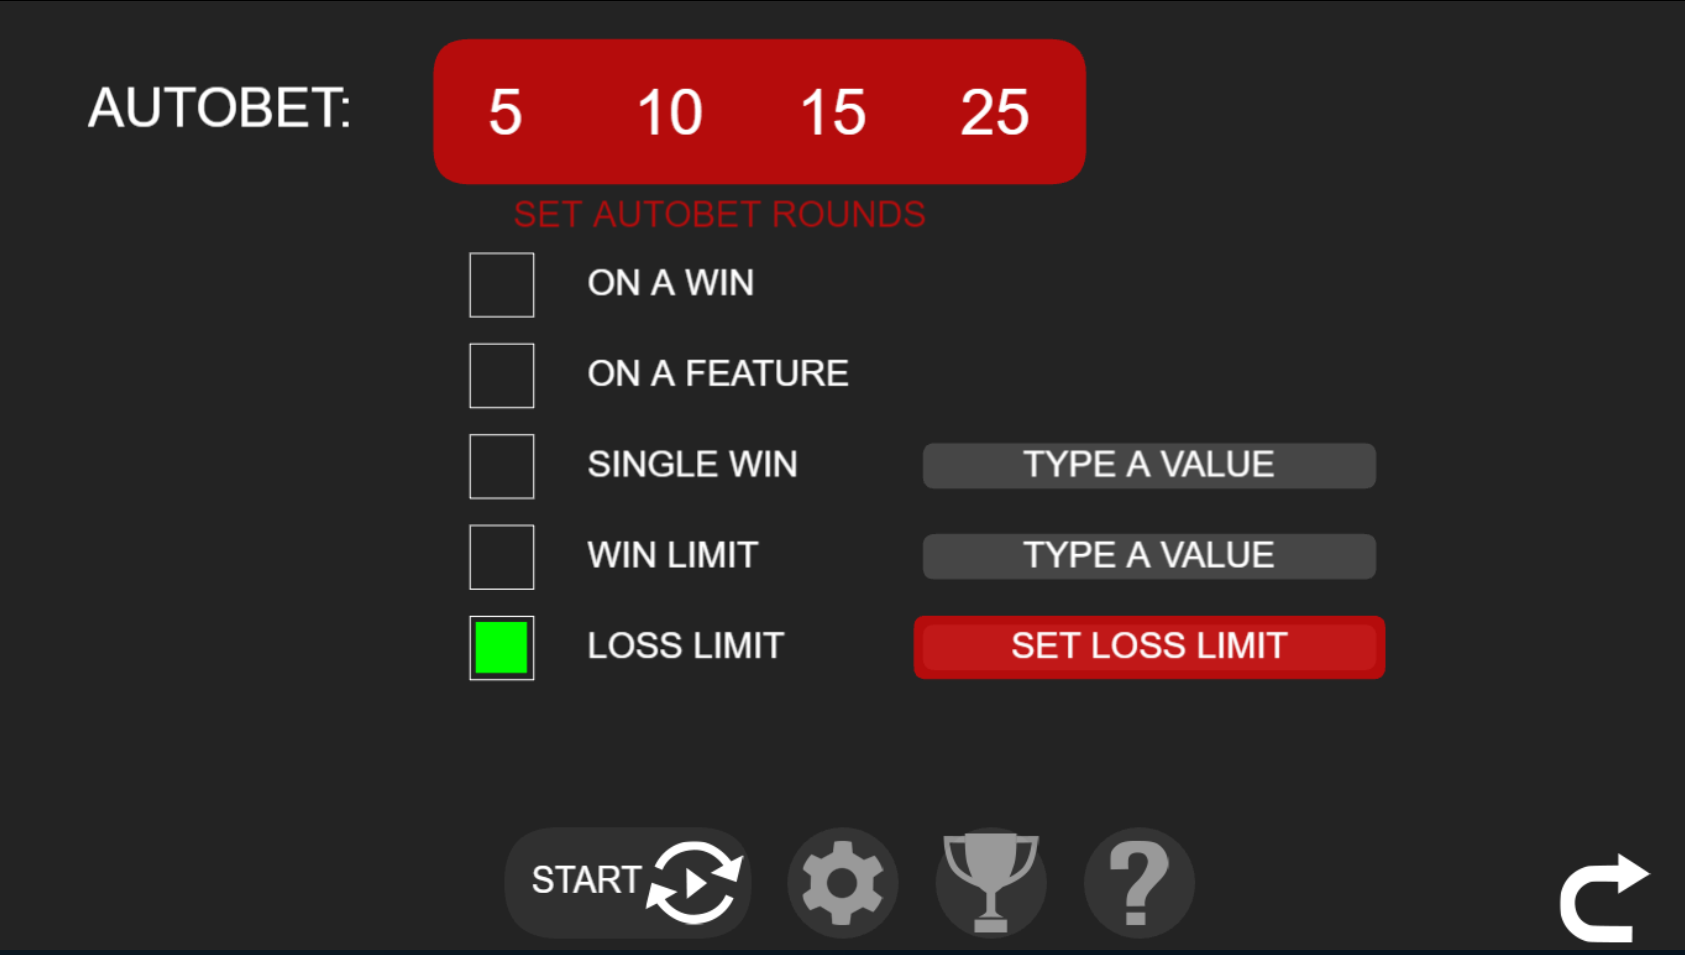 Pets autobet settings for uk players.png